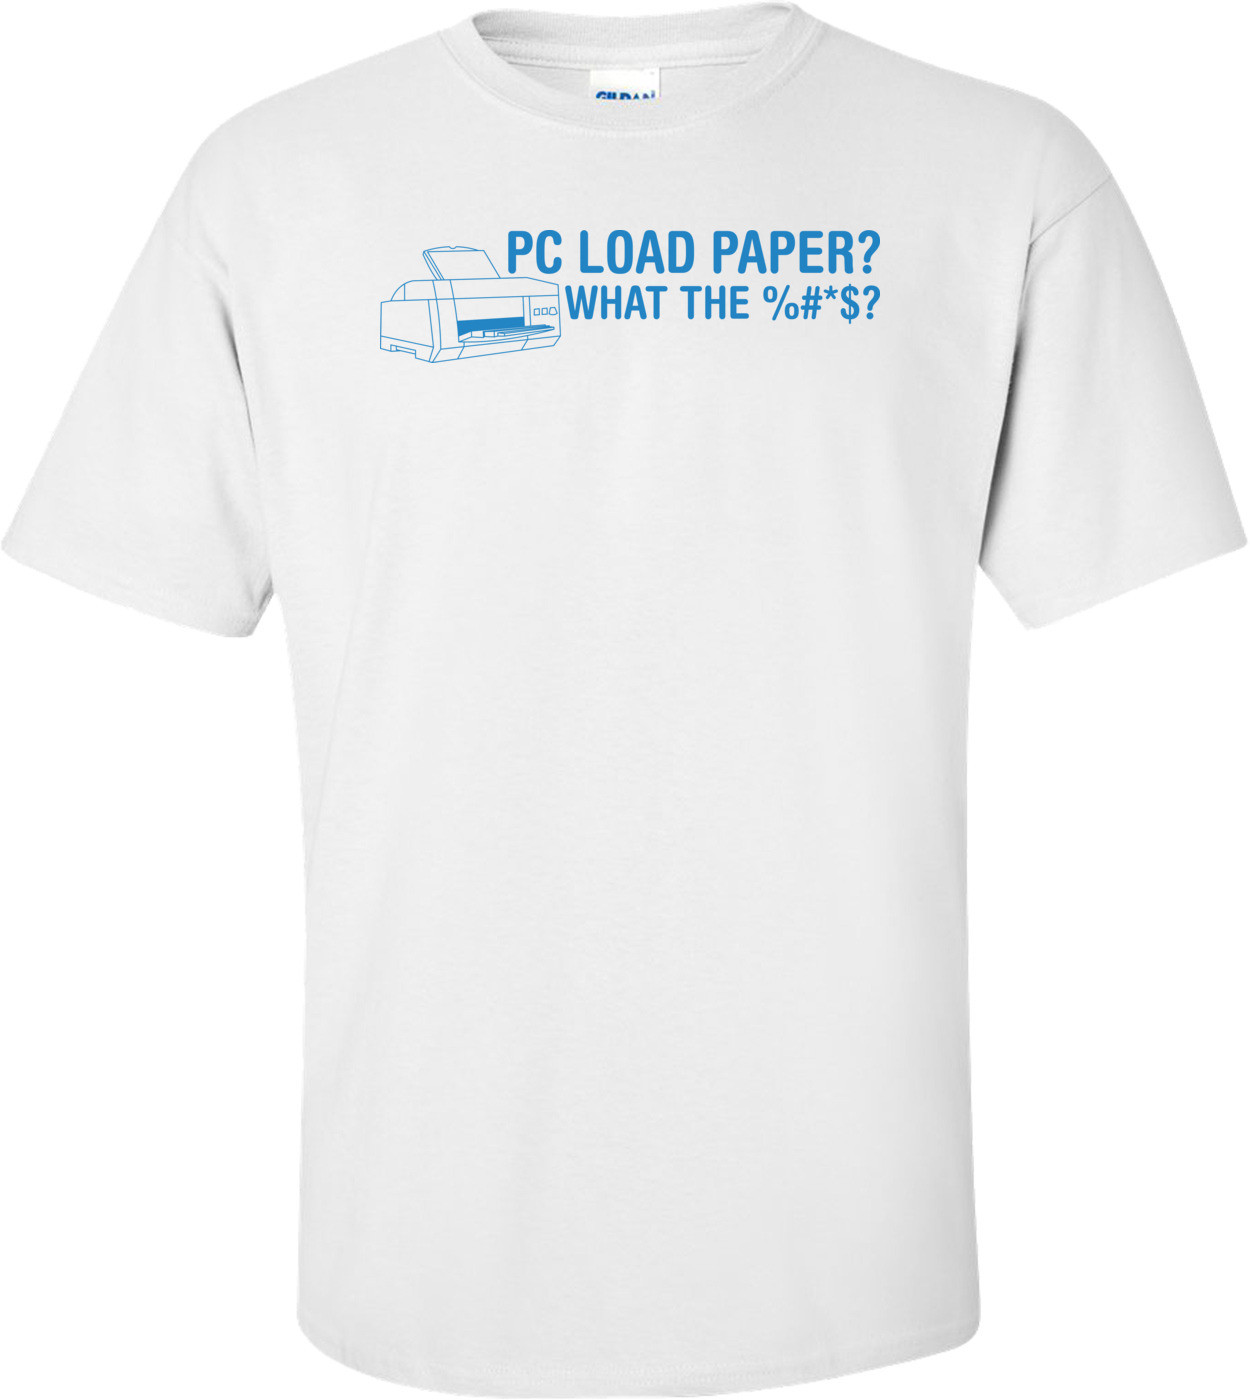 Pc Load Paper? What The %#*$?